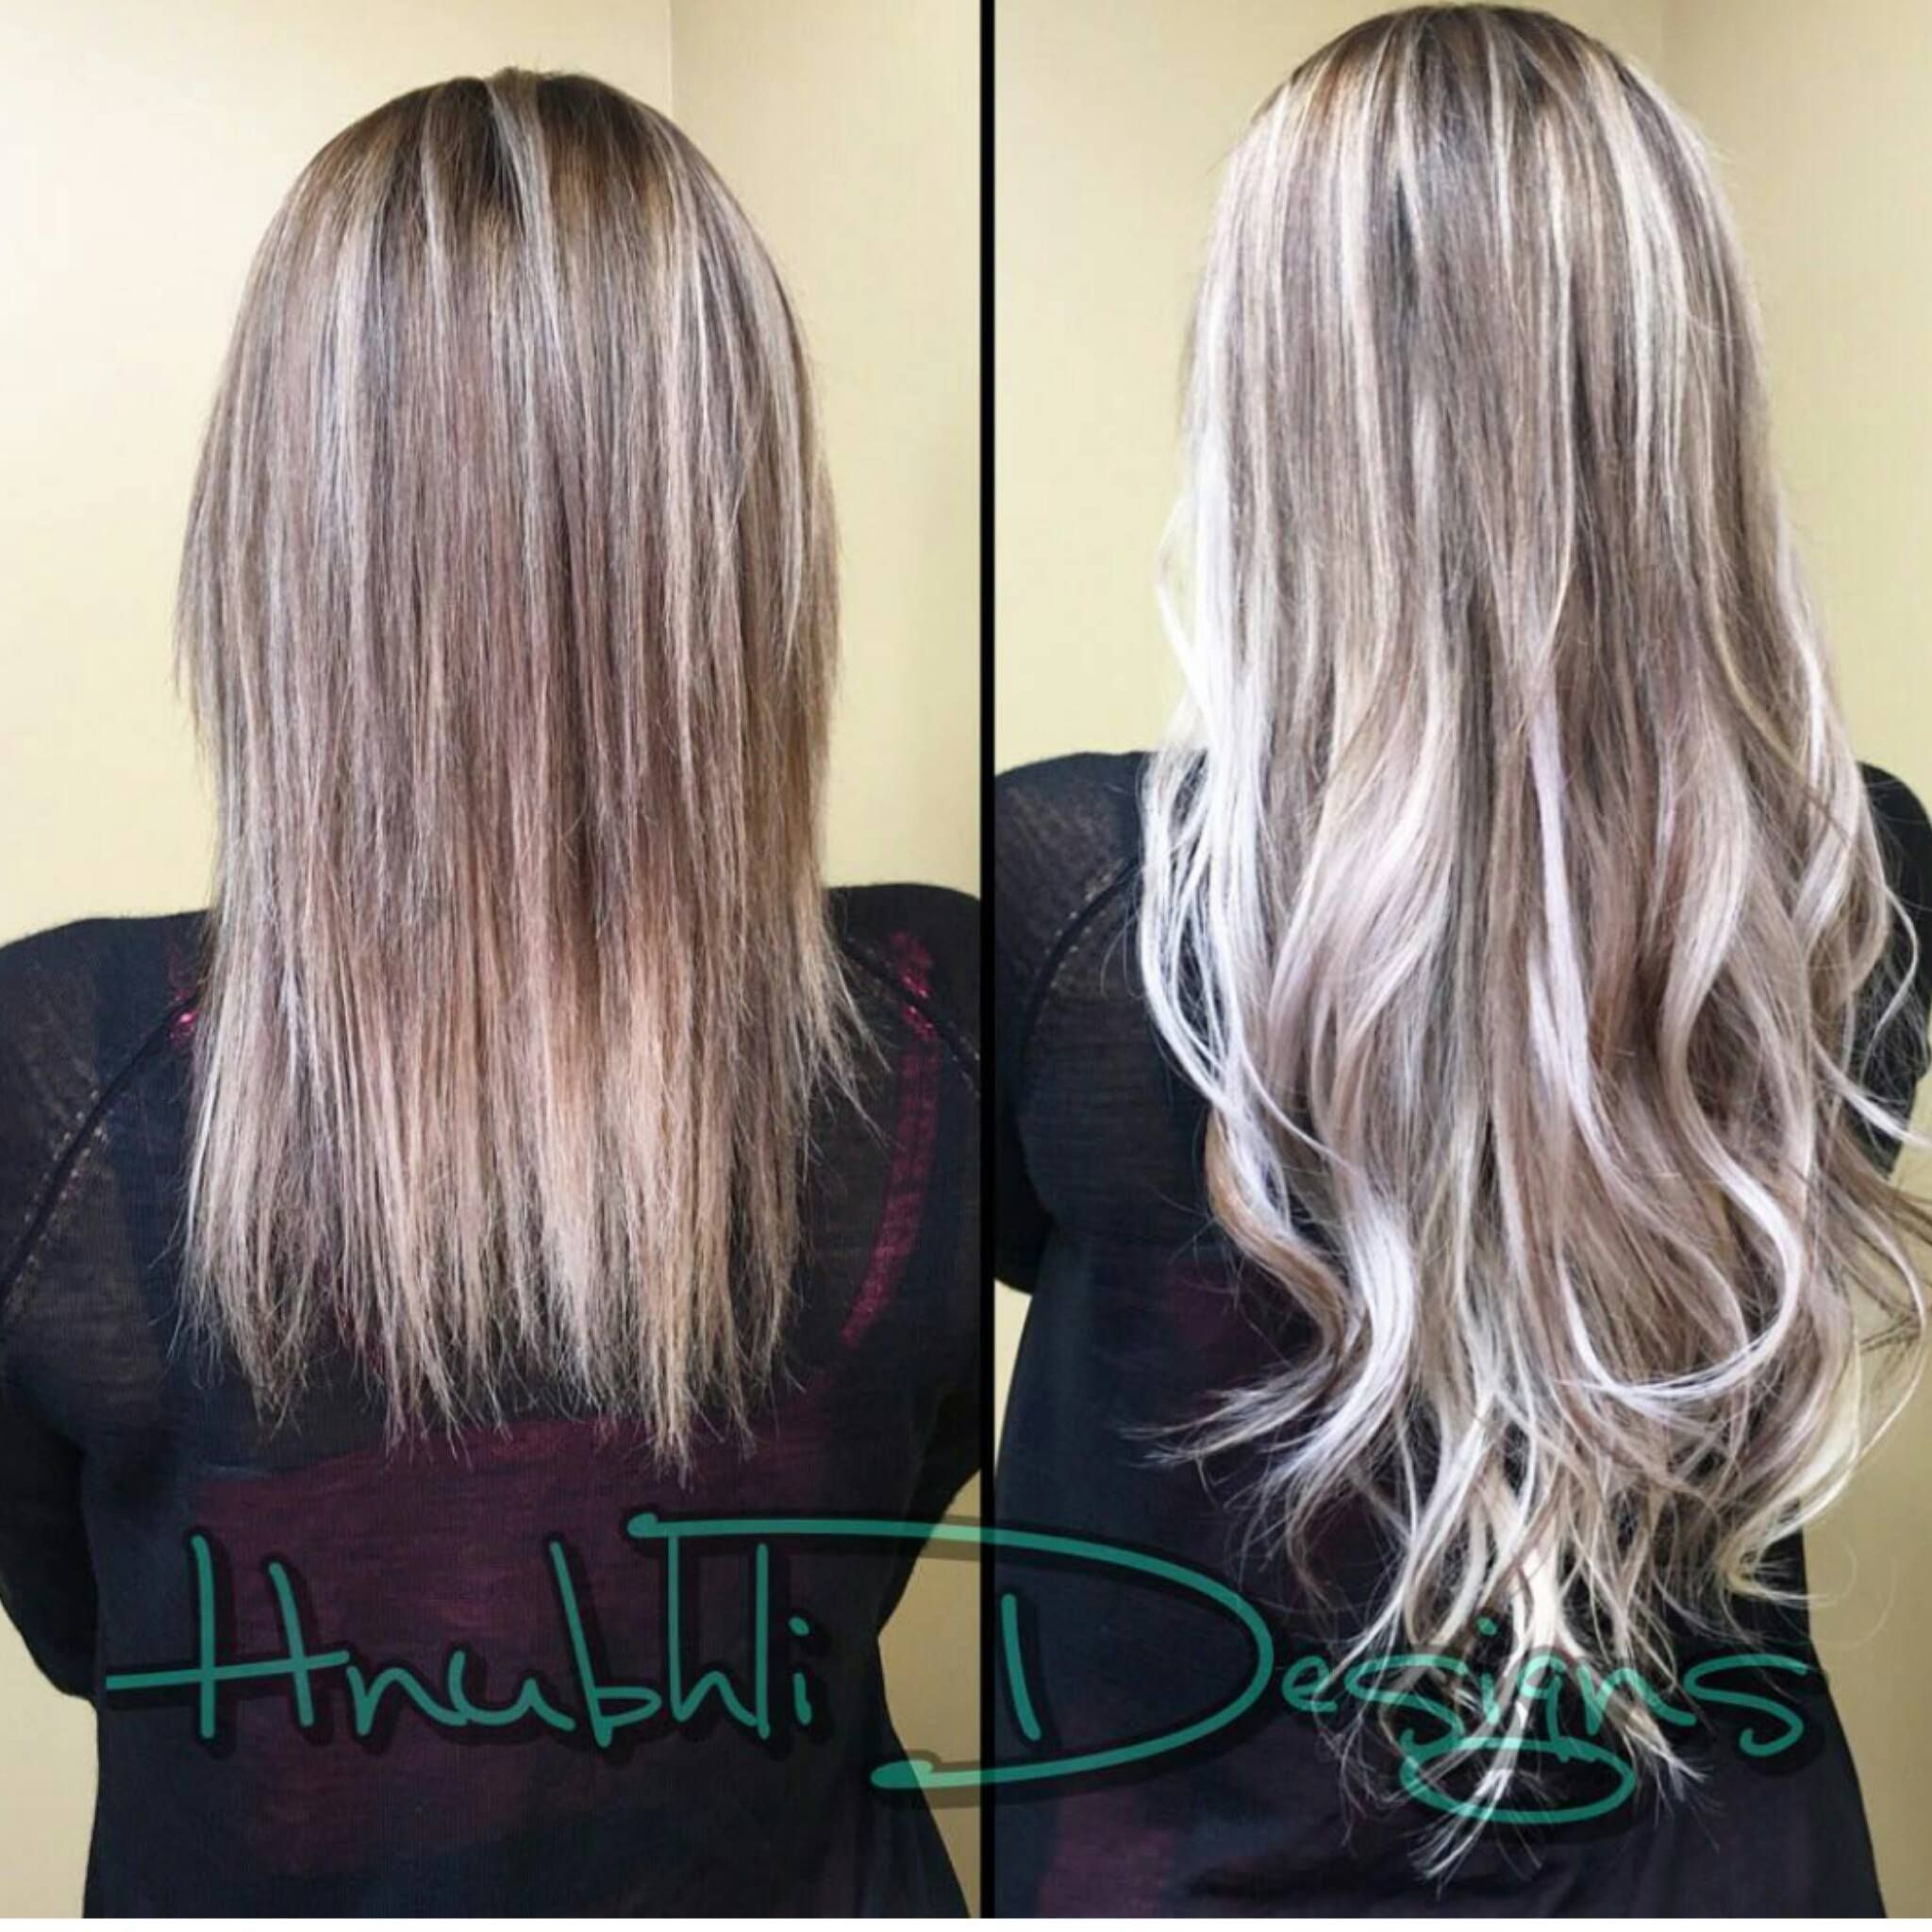 She Is Touched Up Aqua Tape In Hair Extensions Looks Beautiful As